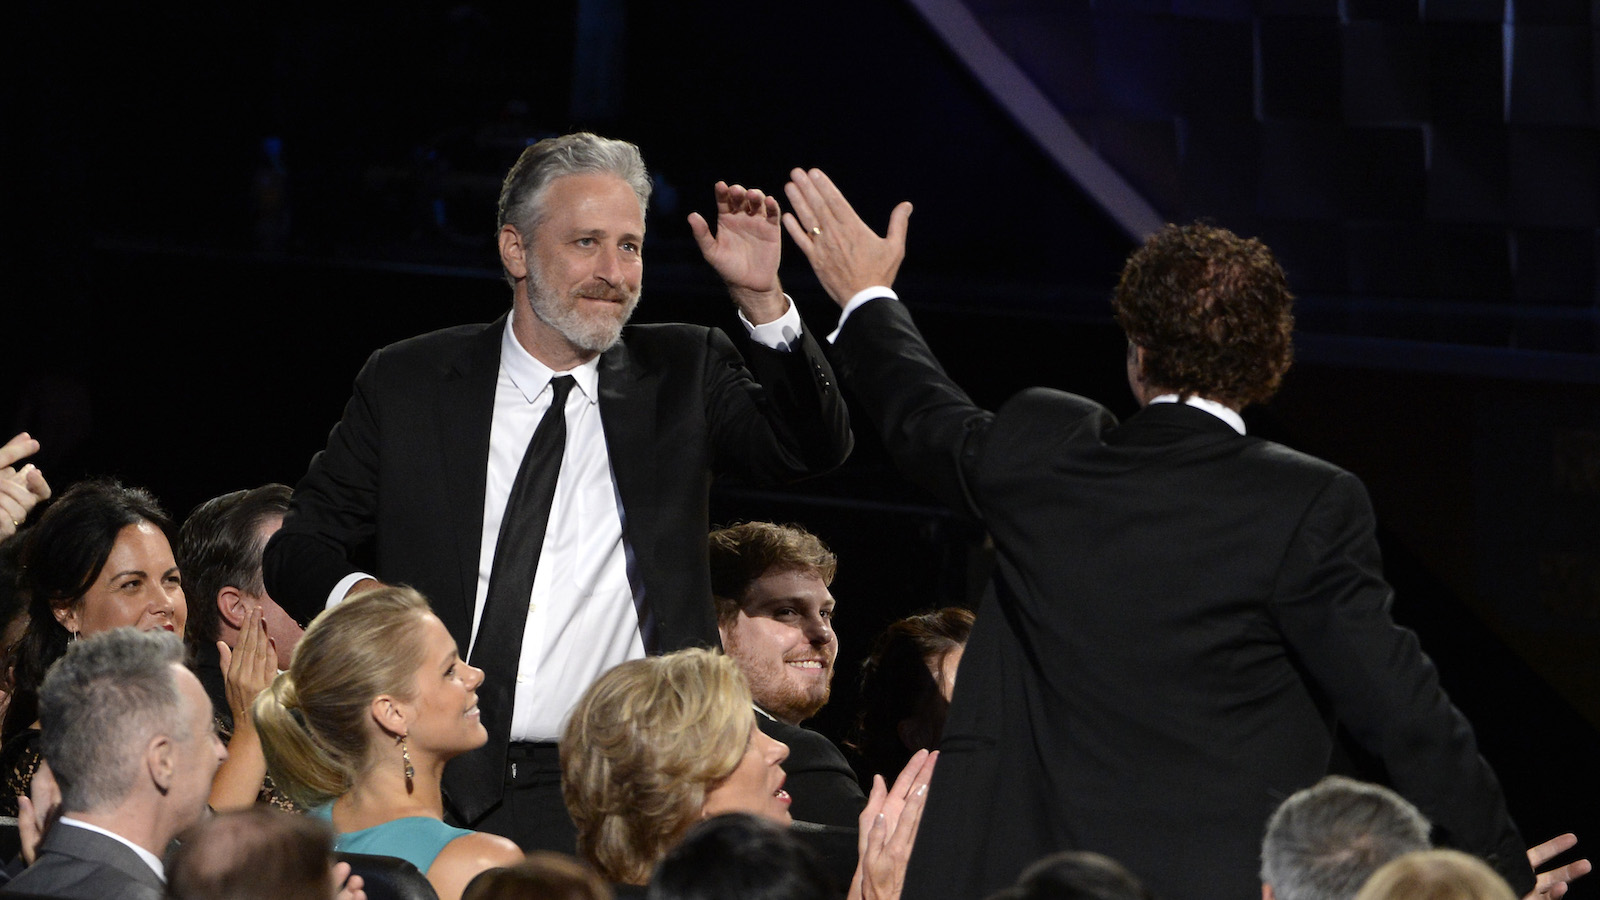 IMAGE DISTRIBUTED FOR THE TELEVISION ACADEMY - Jon Stewart gives Chuck O'Neil a high five at the 67th Primetime Emmy Awards on Sunday, Sept. 20, 2015, at the Microsoft Theater in Los Angeles.